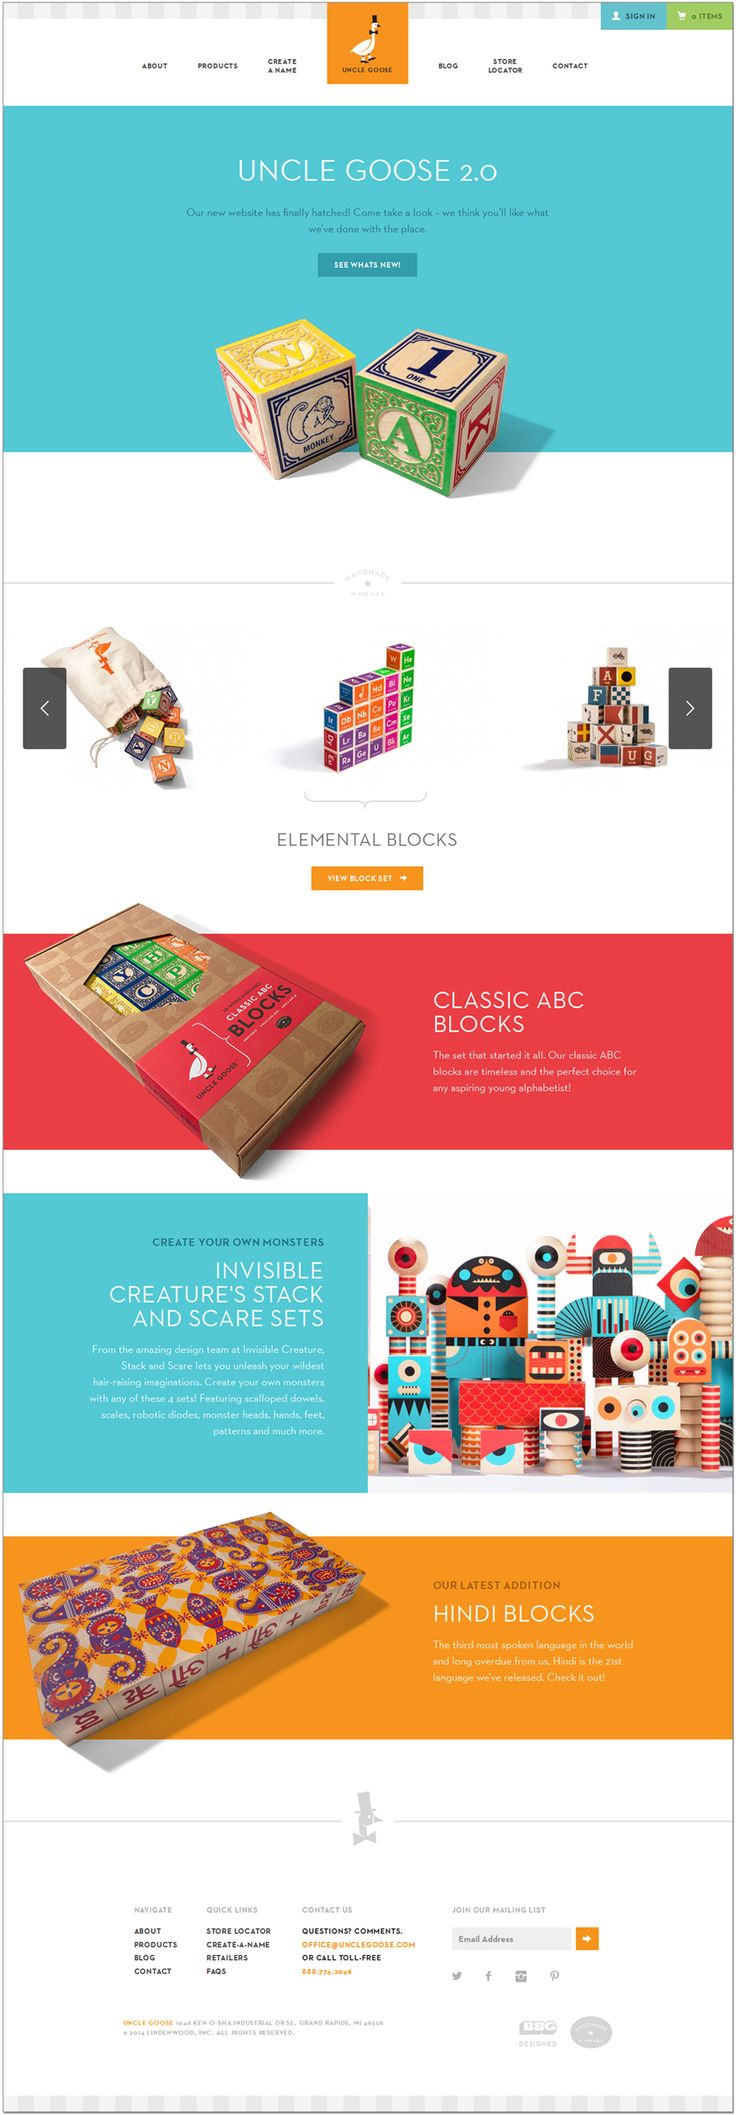 best web design images on pinterest design web web layout and